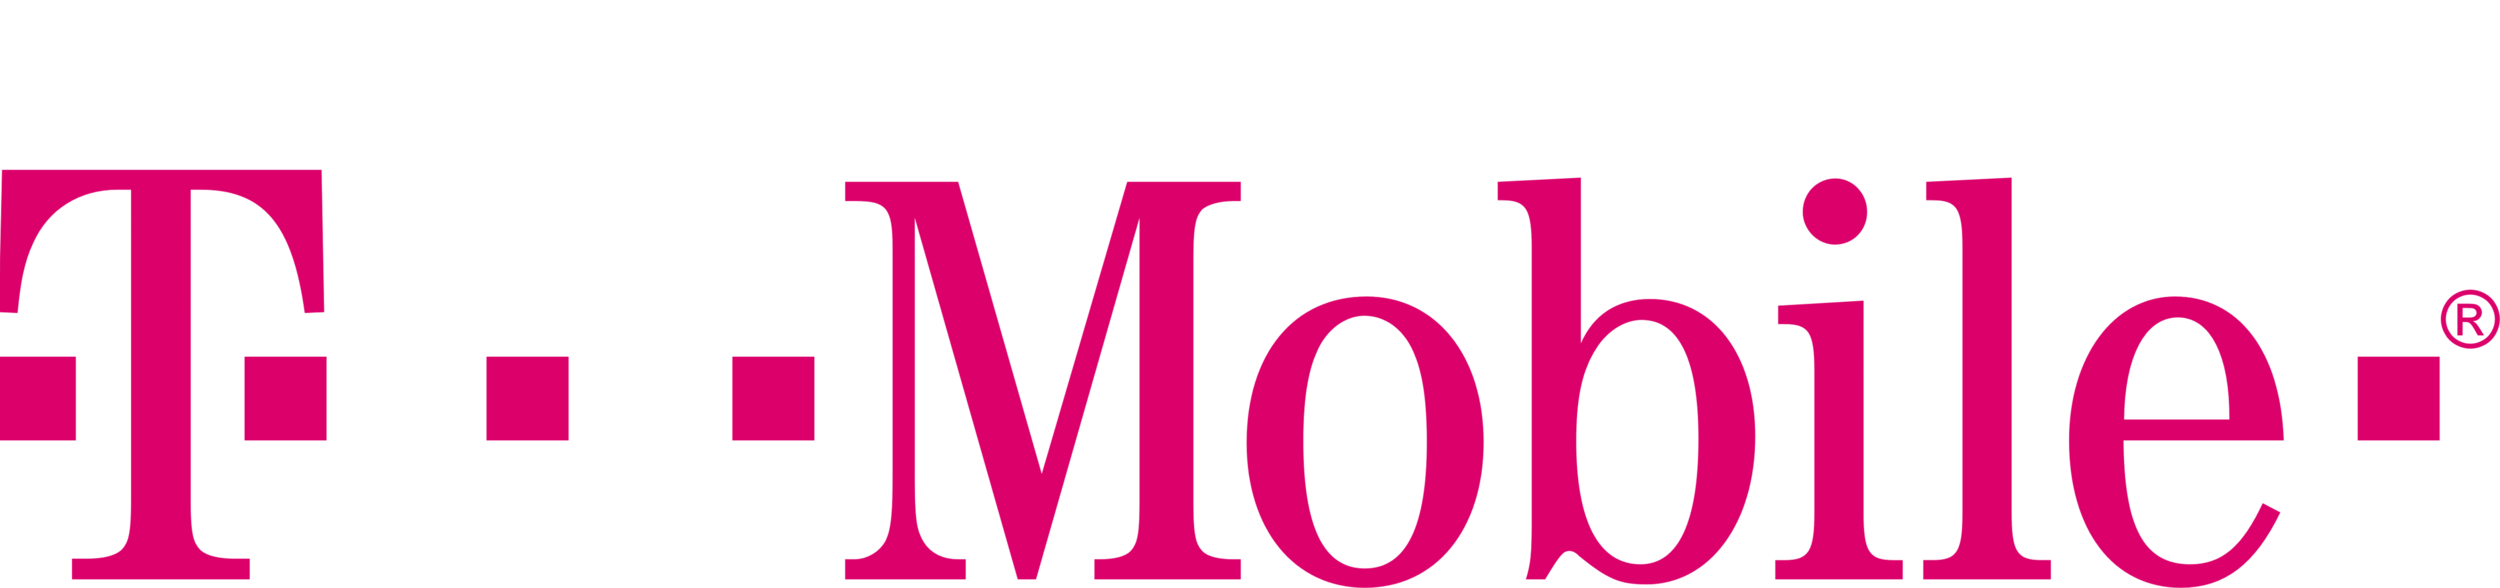 T-Mobile-Logo-corrected.png